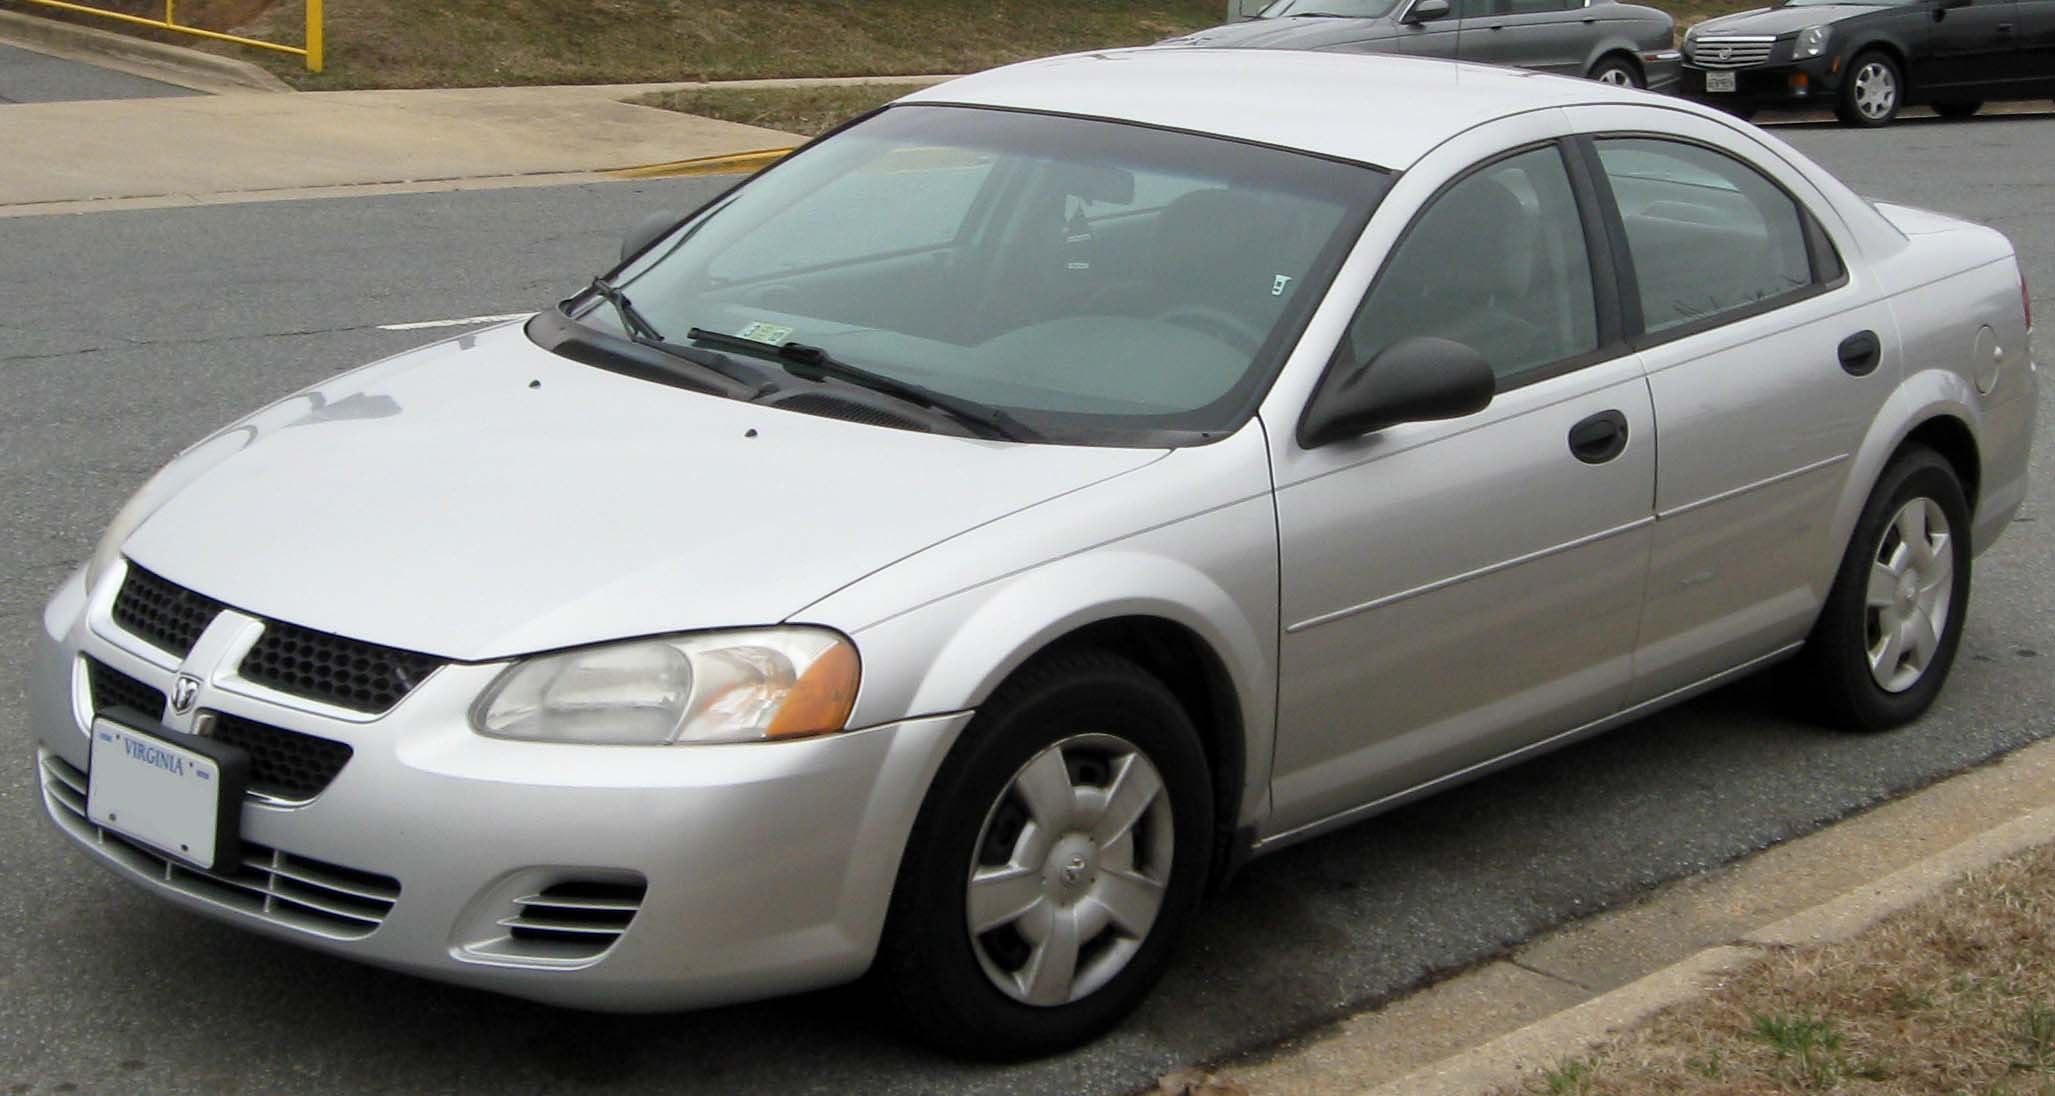 https://upload.wikimedia.org/wikipedia/commons/7/7c/2004-2006_Dodge_Stratus_--_03-09-2011.jpg